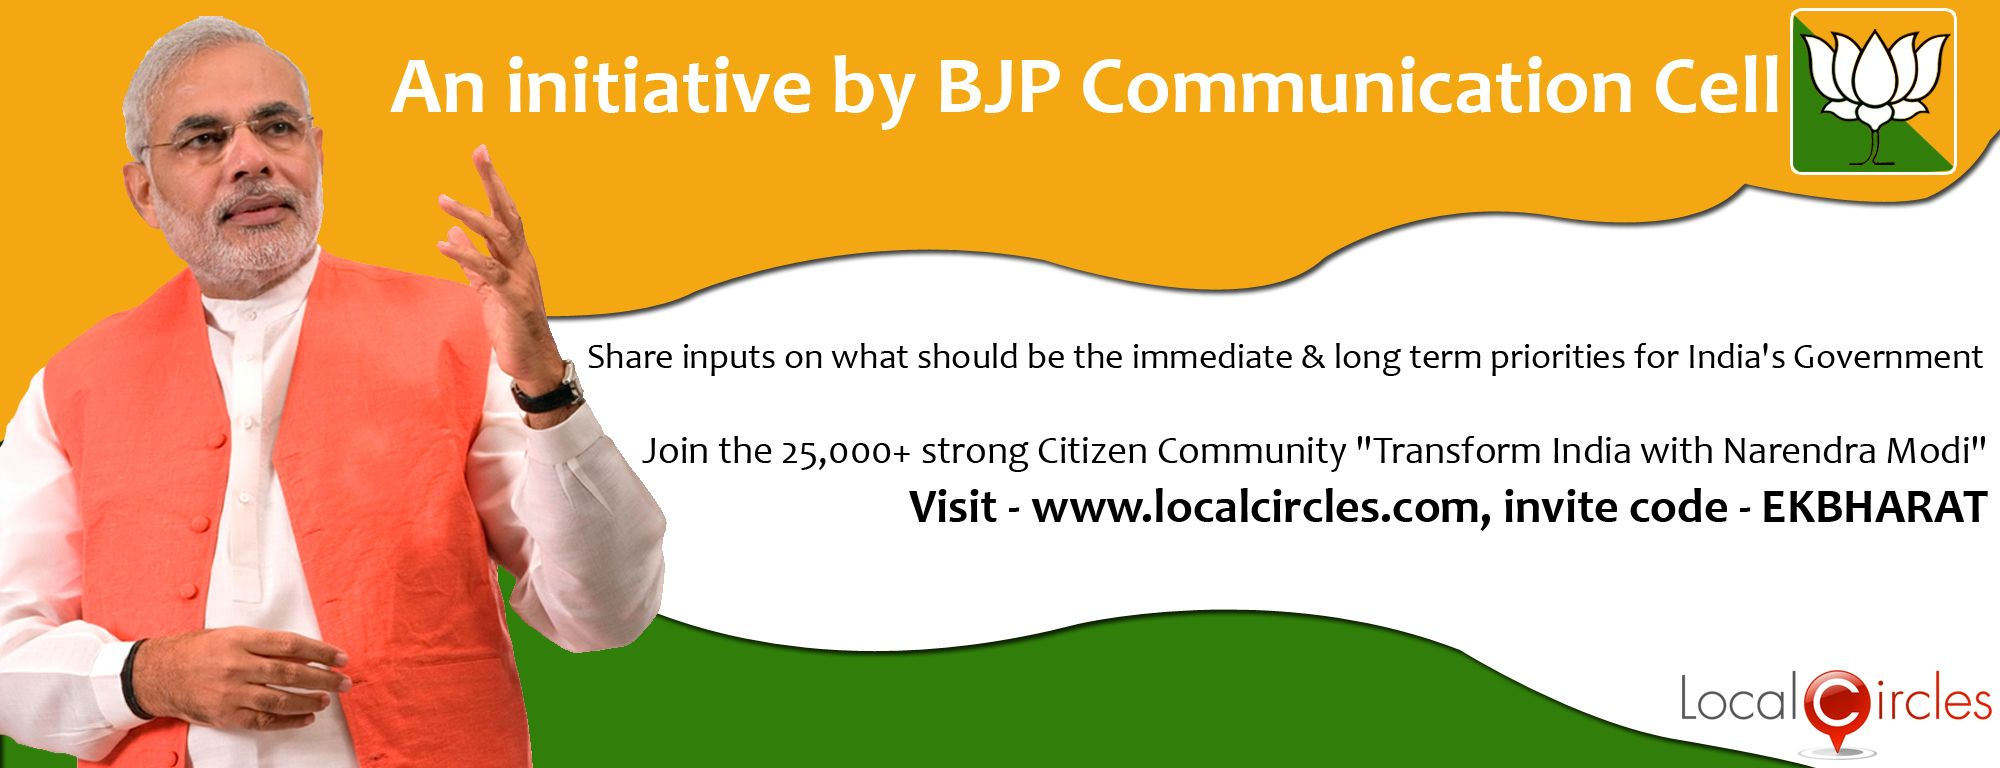 Transform_India_with_Narendra_Modi_-_25000_Citizens_Engaging_with_Government___20140523070851___.jpg